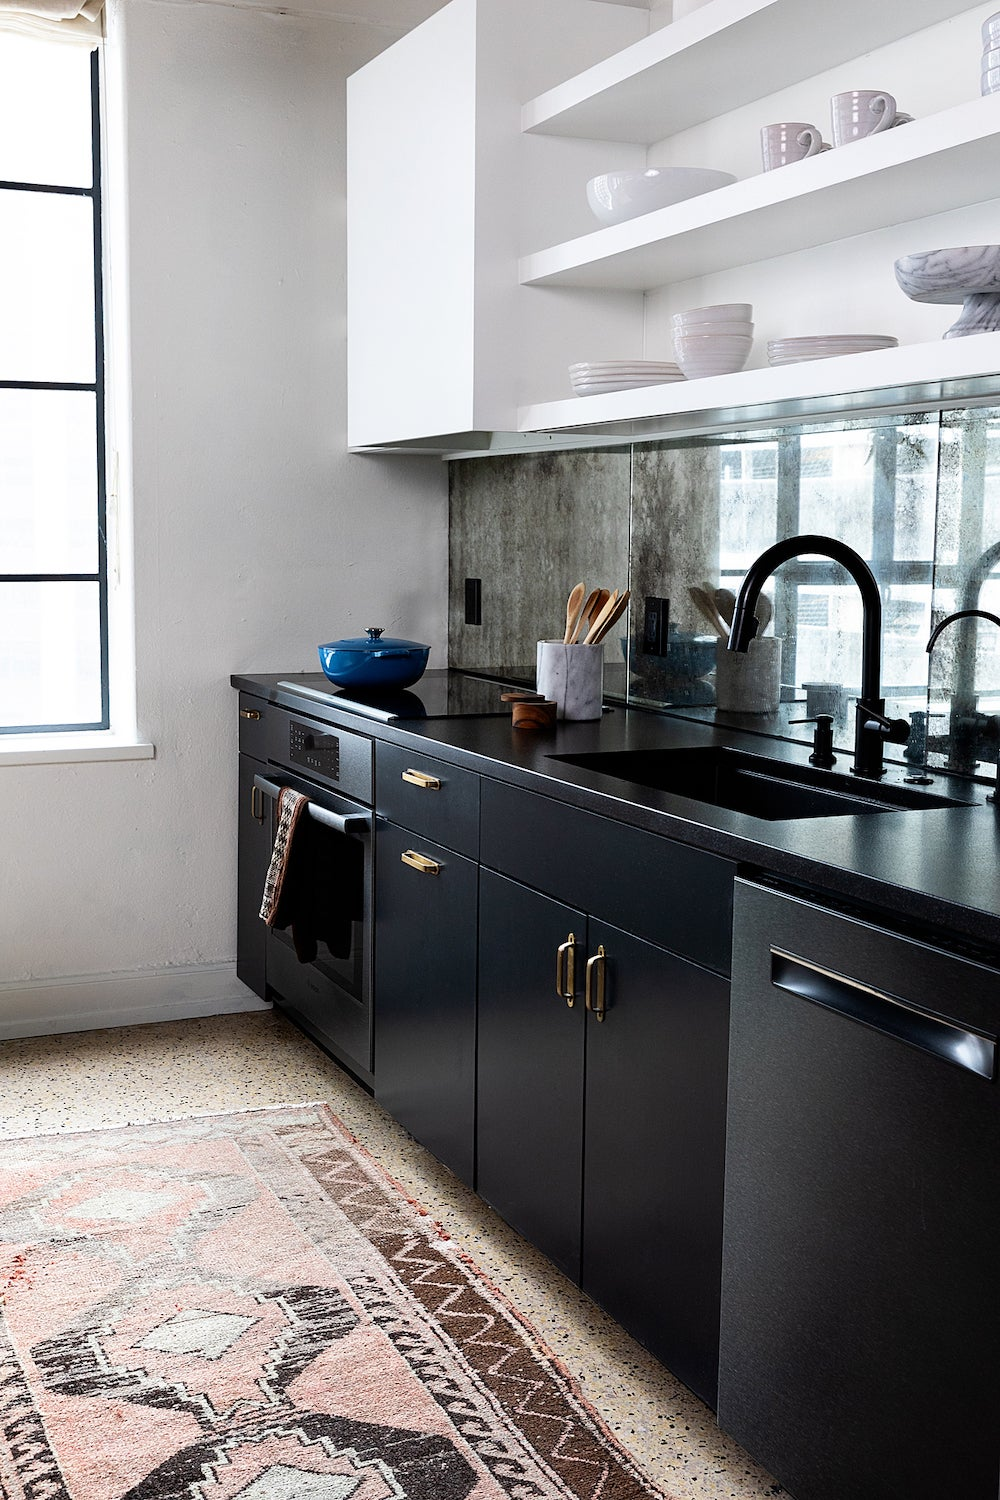 black lower cabinets and patina mirror backsplahs